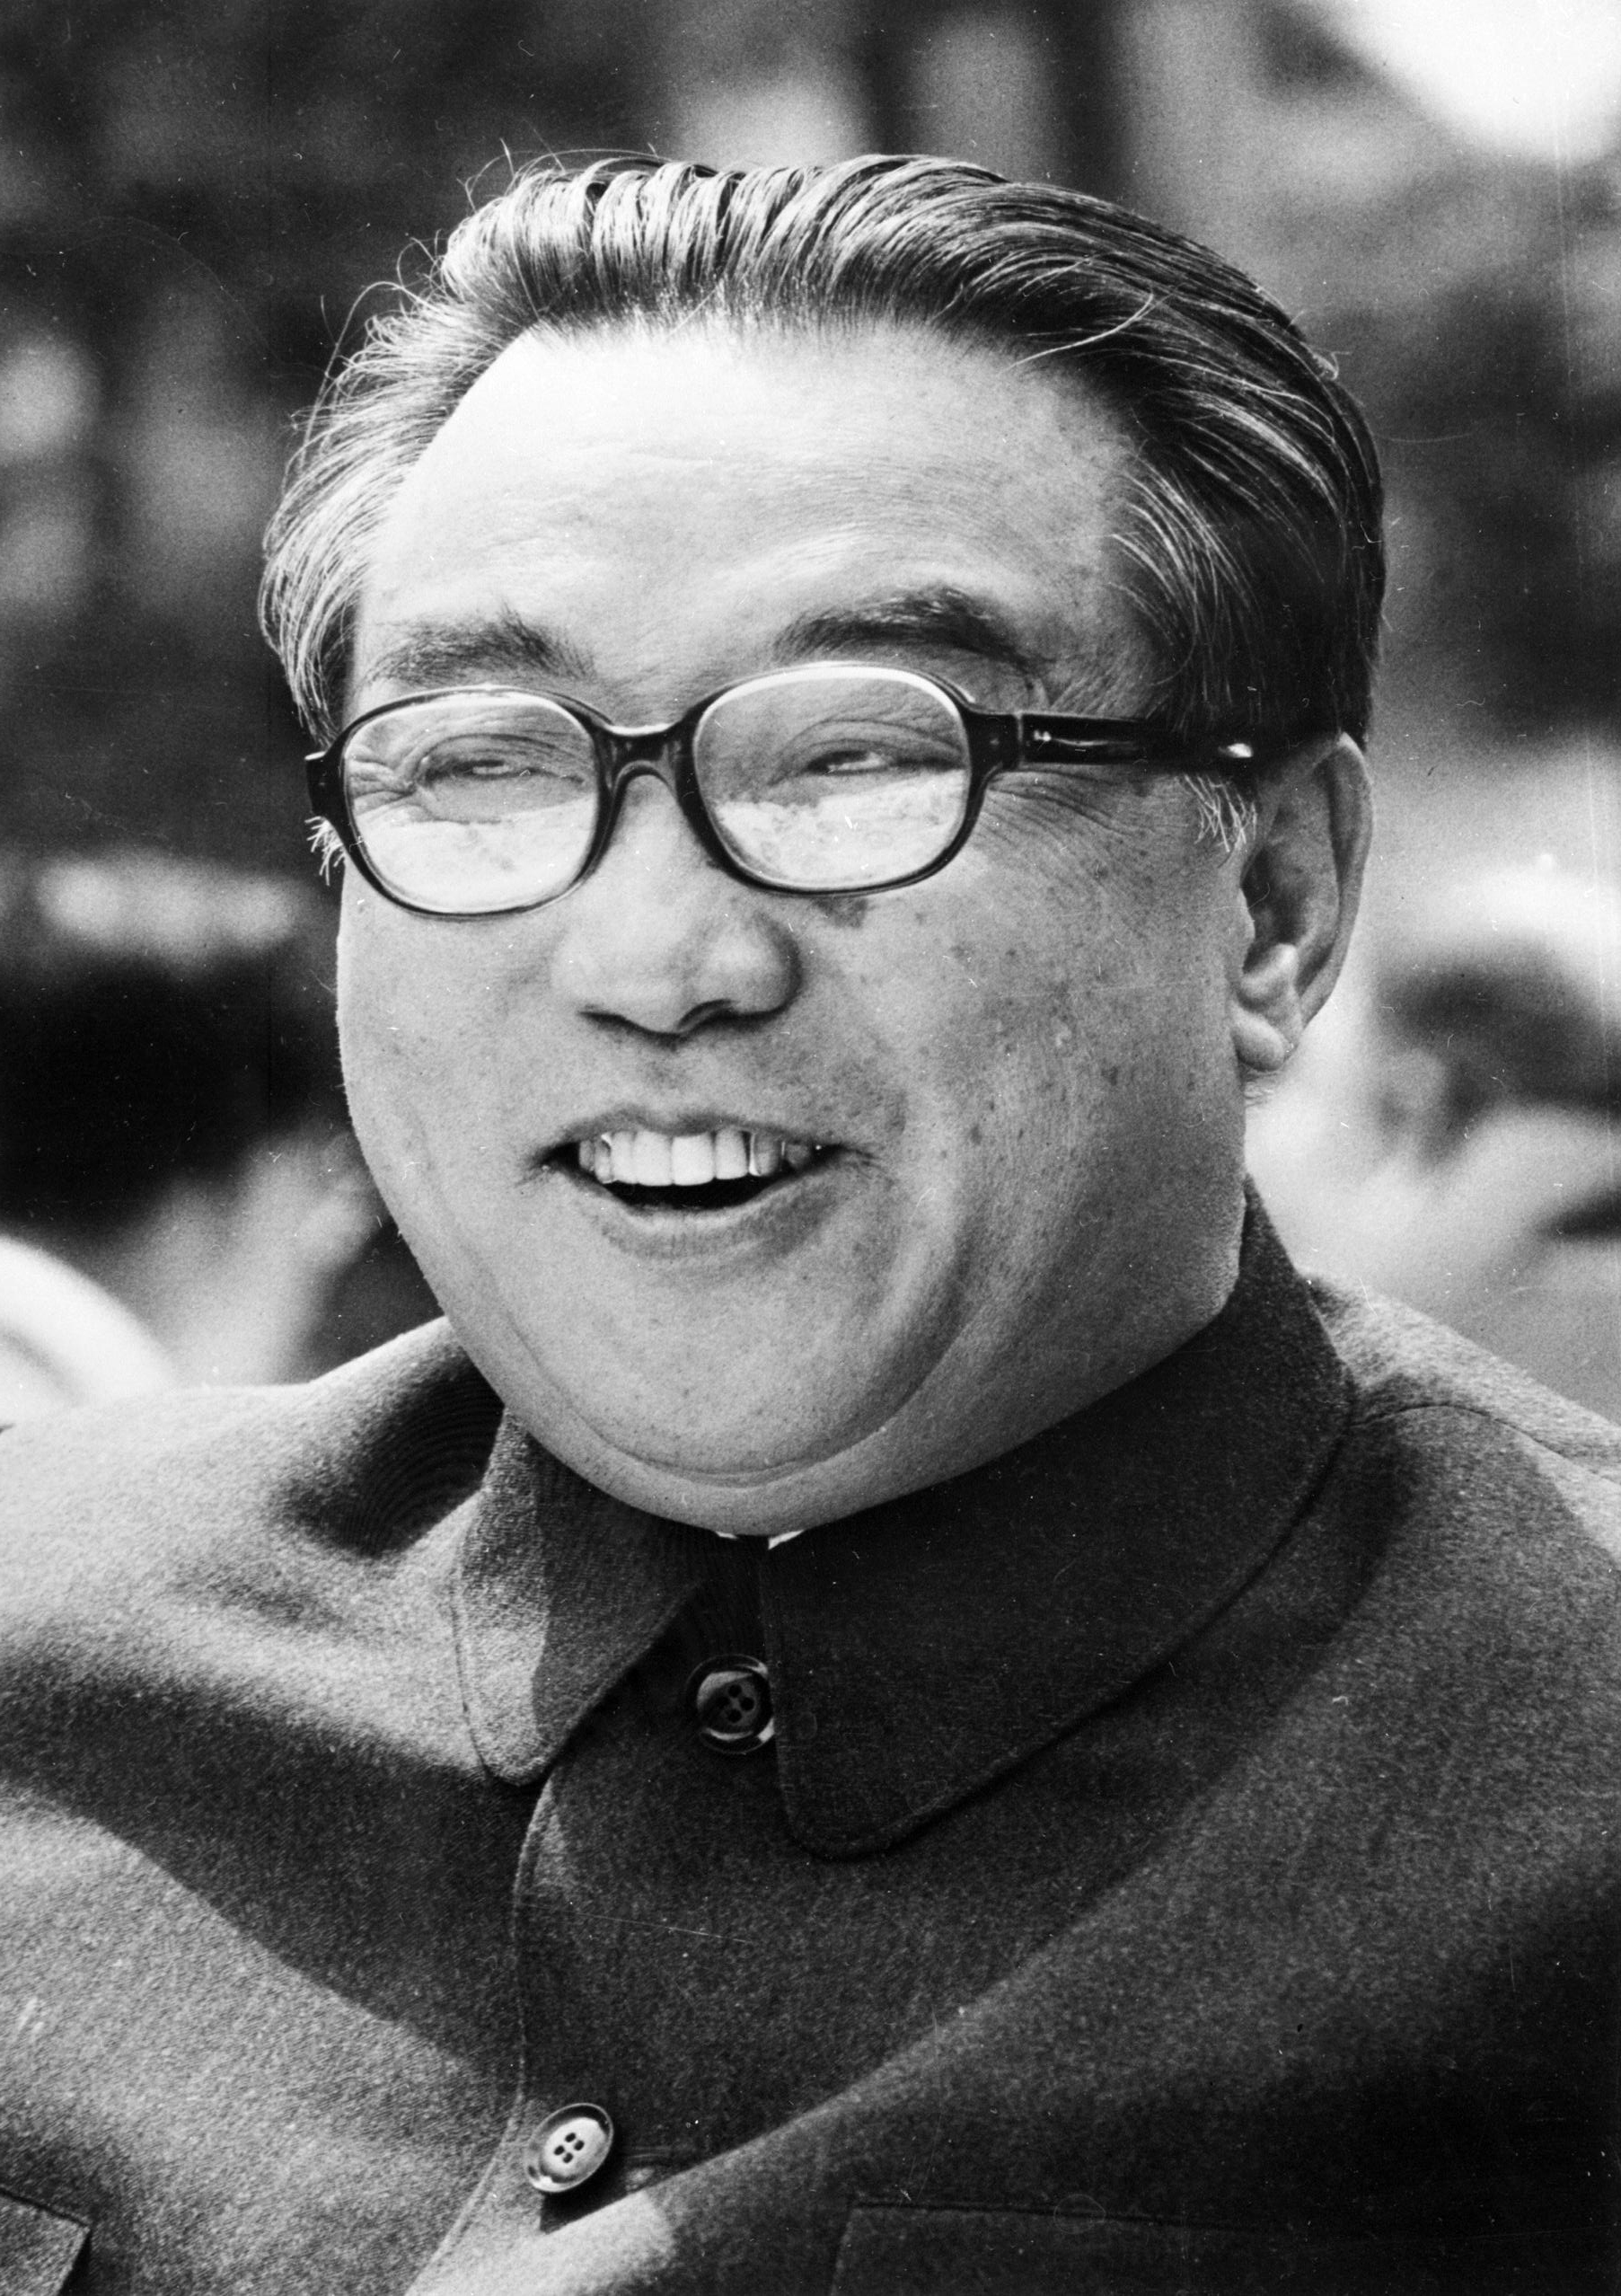 An image of North Korean Leader Kim Il Sung dated July 1976.